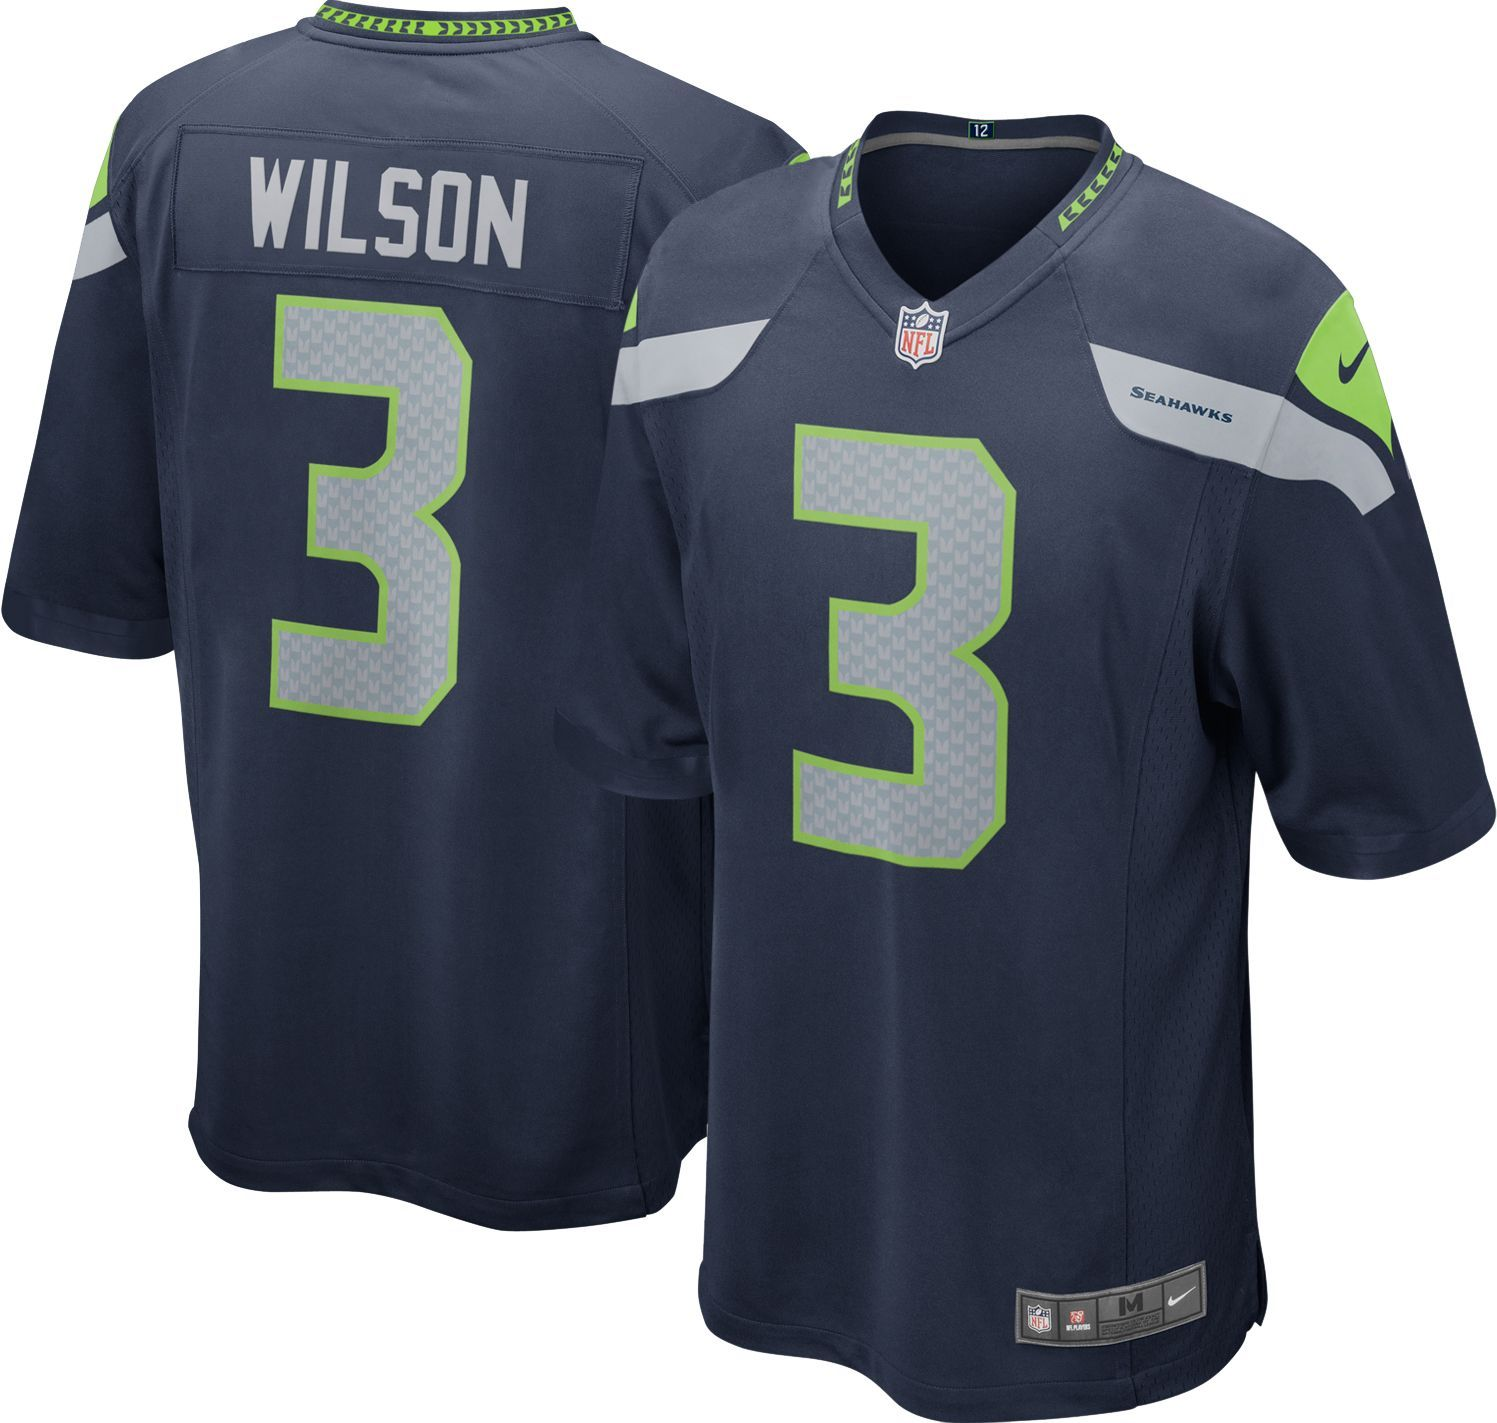 227d3ef2 Nike Boys' Seattle Seahawks Russell Wilson #3 Home Game Jersey ...